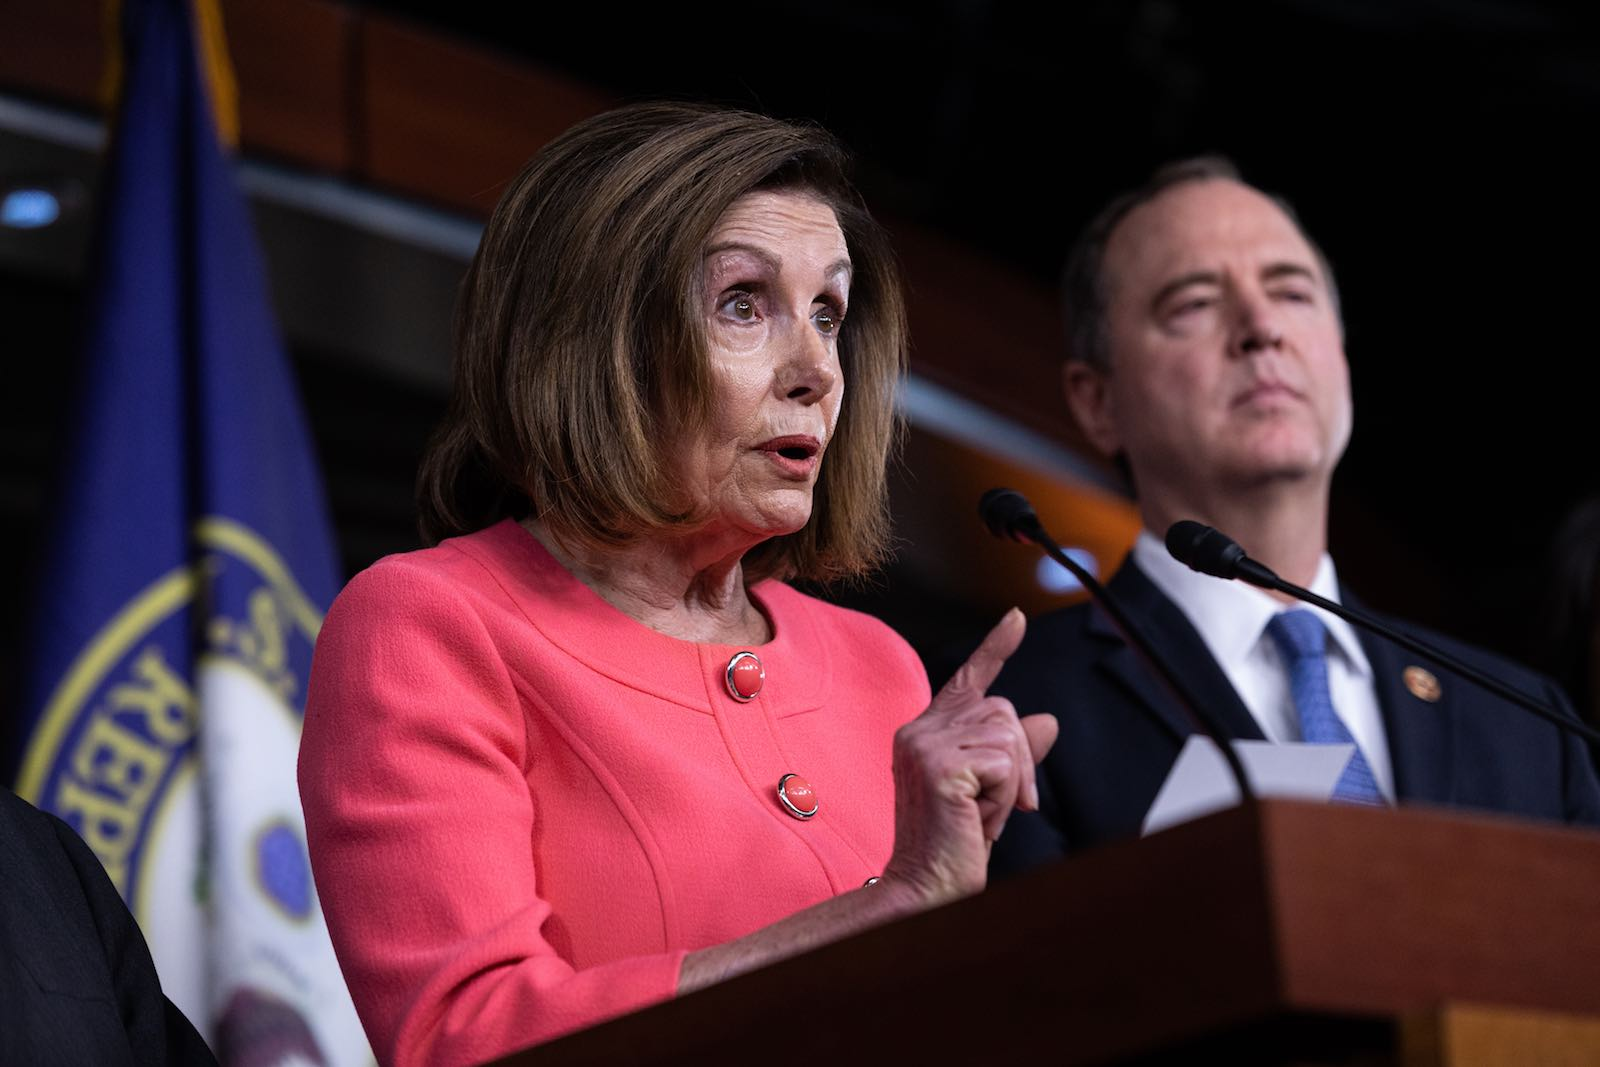 US House Speaker Nancy Pelosi announces vote on sending impeachment articles to the Senate, while Rep. Adam Schiff looks on (Photo: Aurora Samperio/NurPhoto via Getty Images)